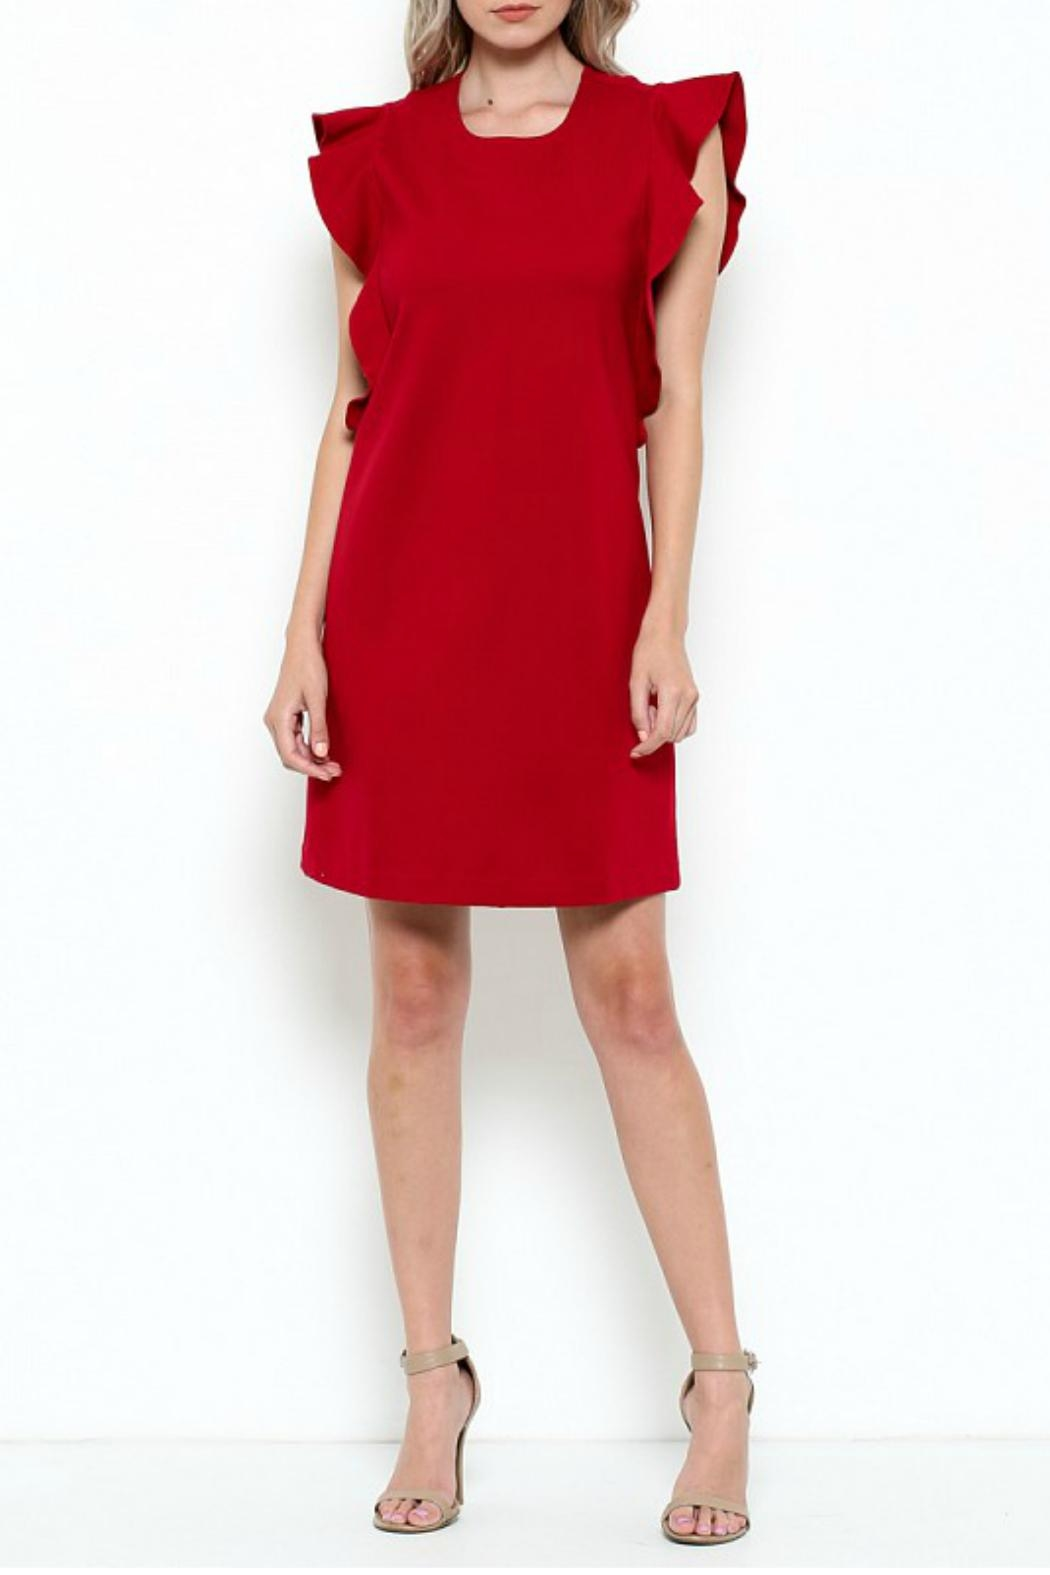 Elegance by Sarah Ruhs Ruffle Trim Dress - Main Image